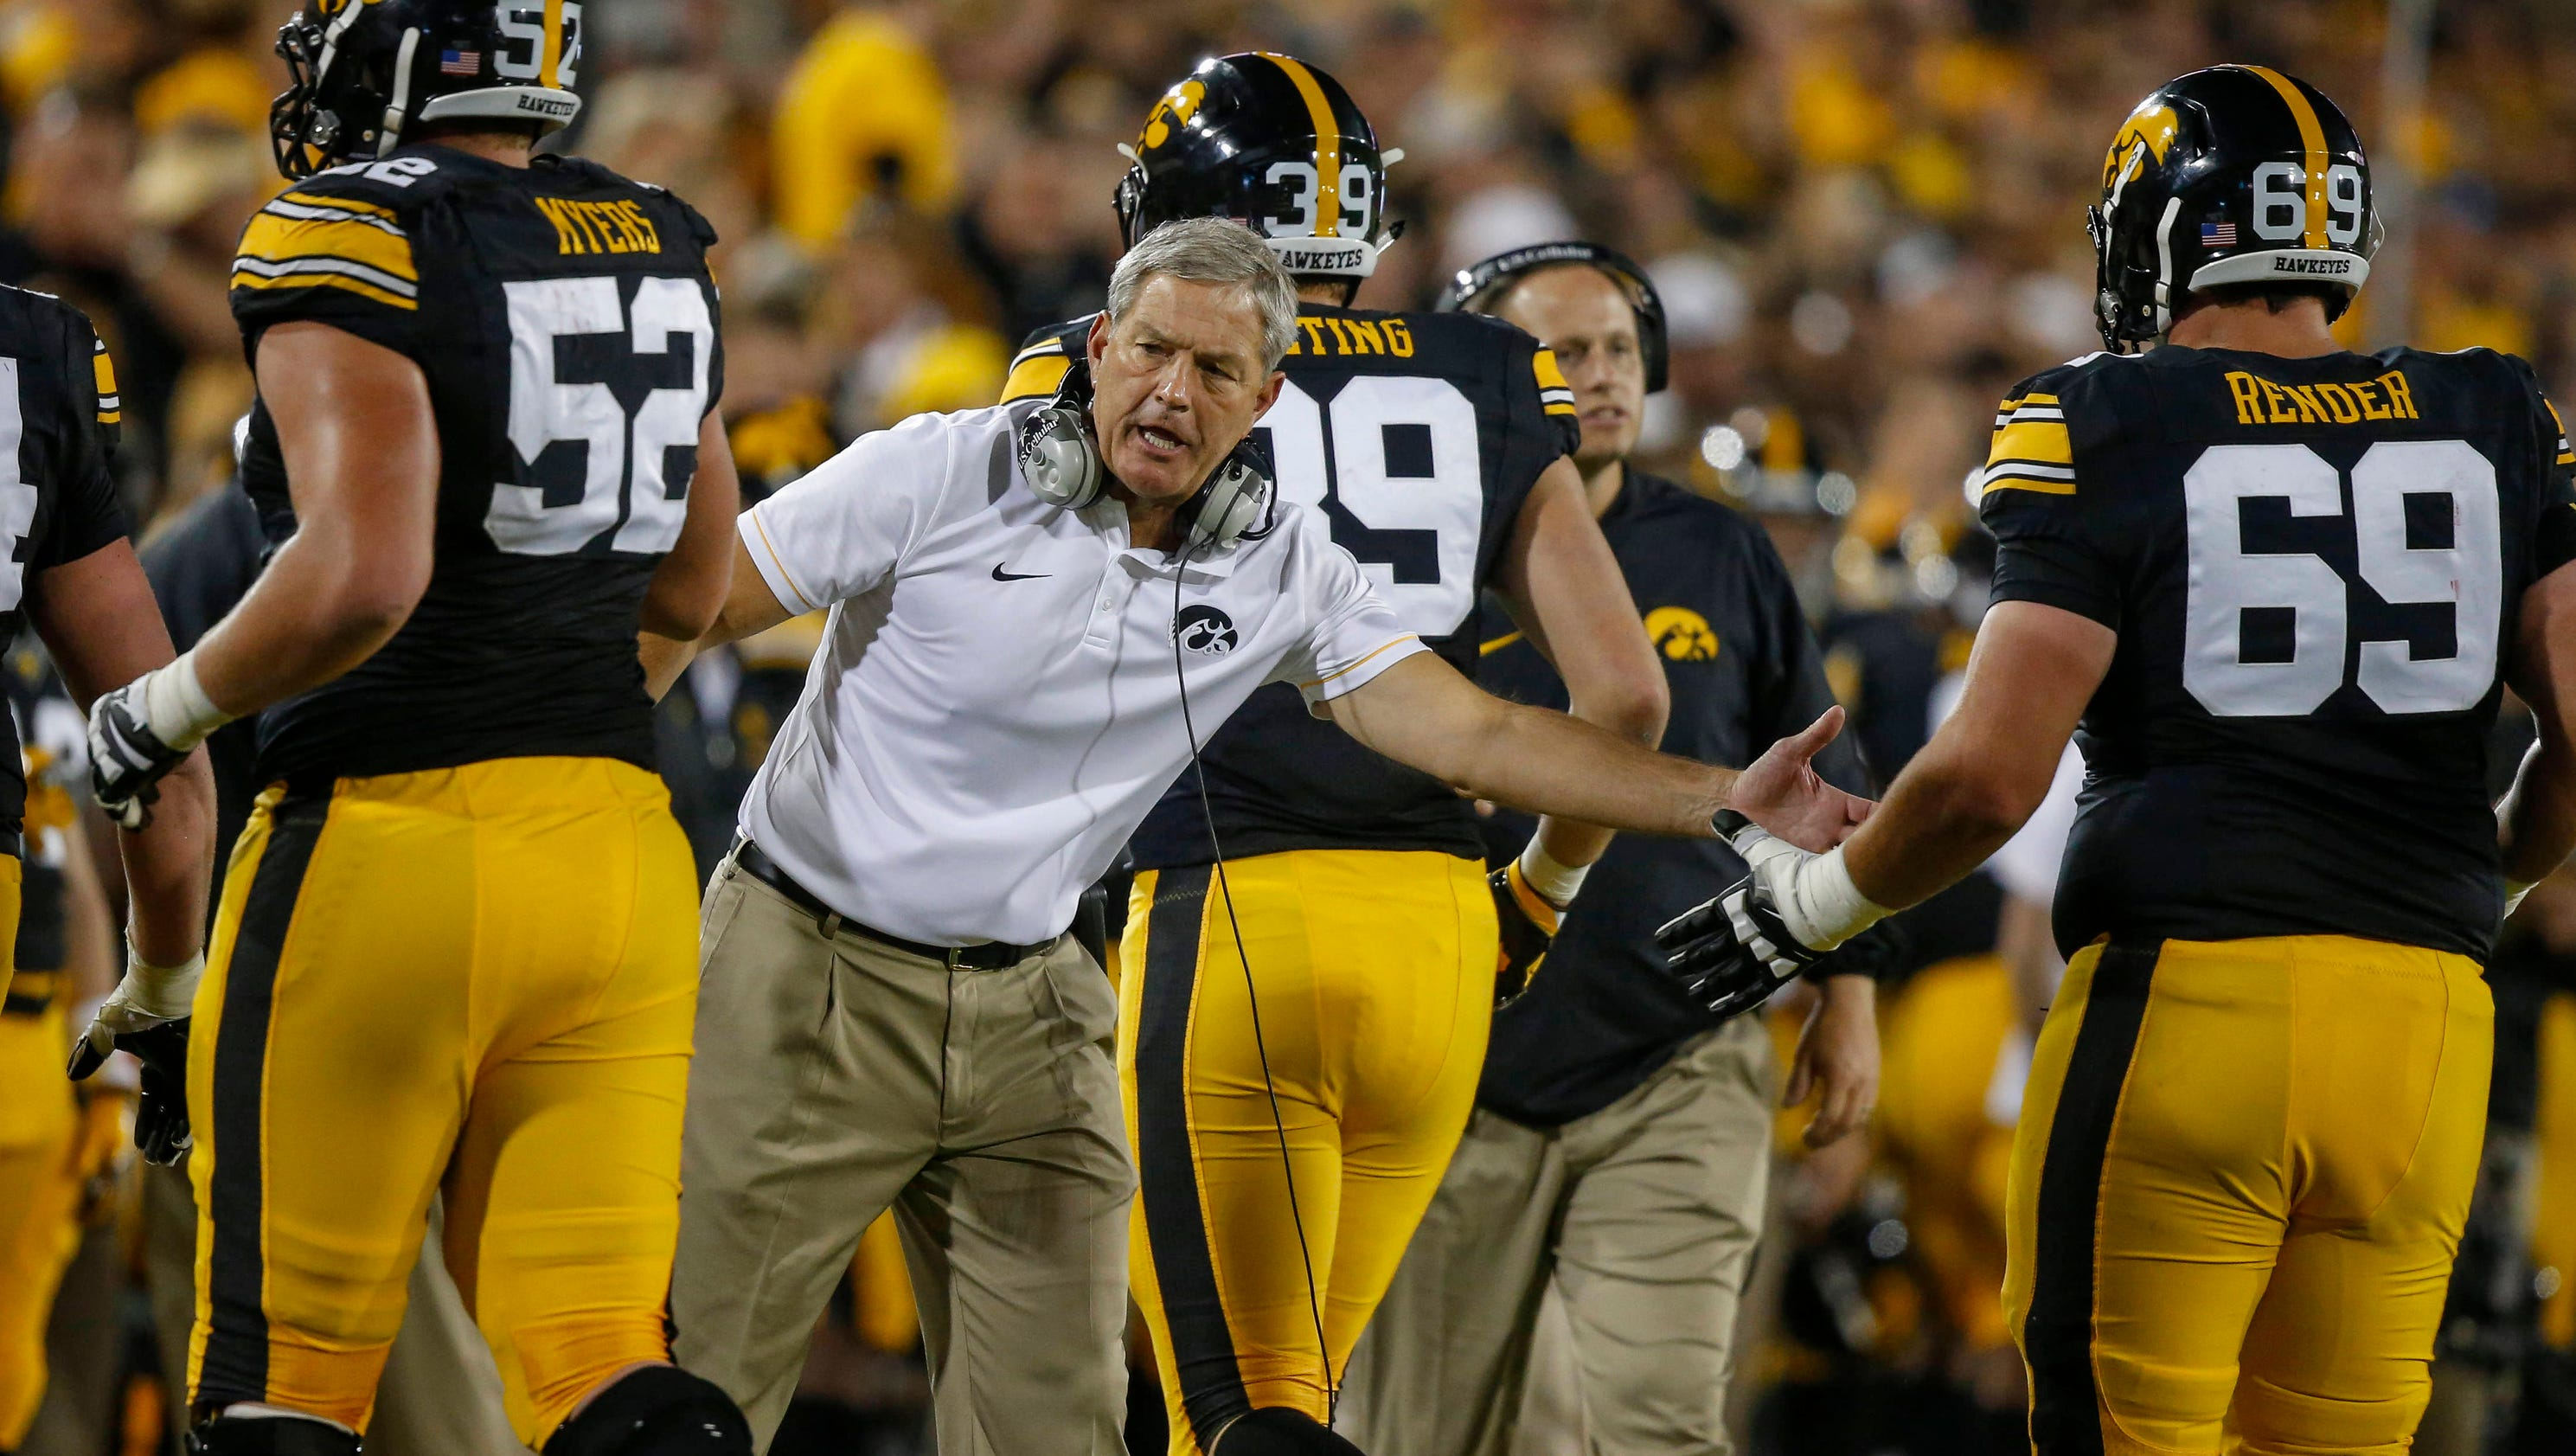 Iowa aims to add star recruits for offensive line arsenal